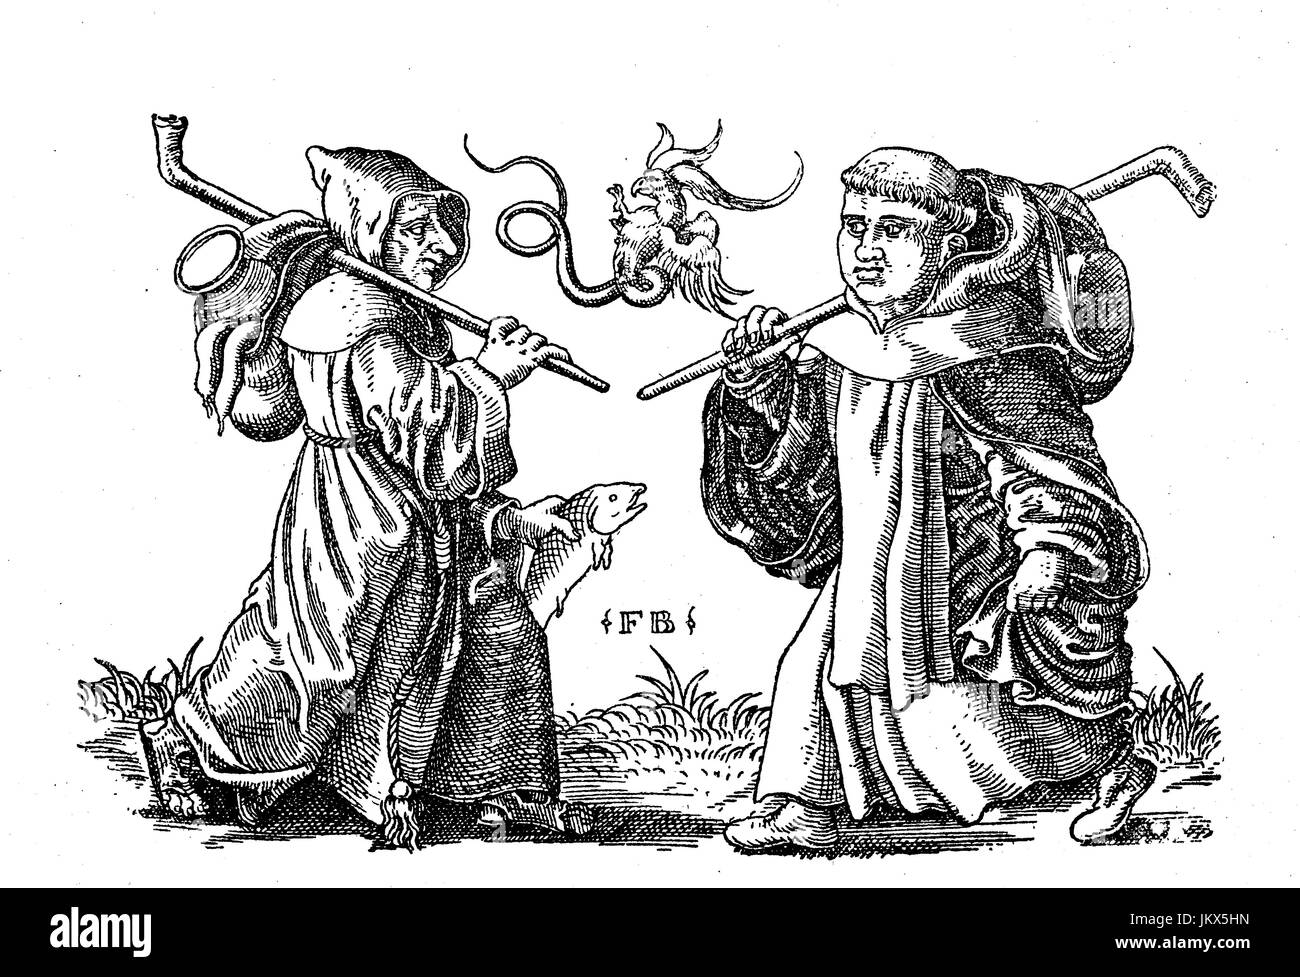 Digital improved:, Two begging monks, copper engraving by Franz Brun around 1560, publication from the year 1882 Stock Photo